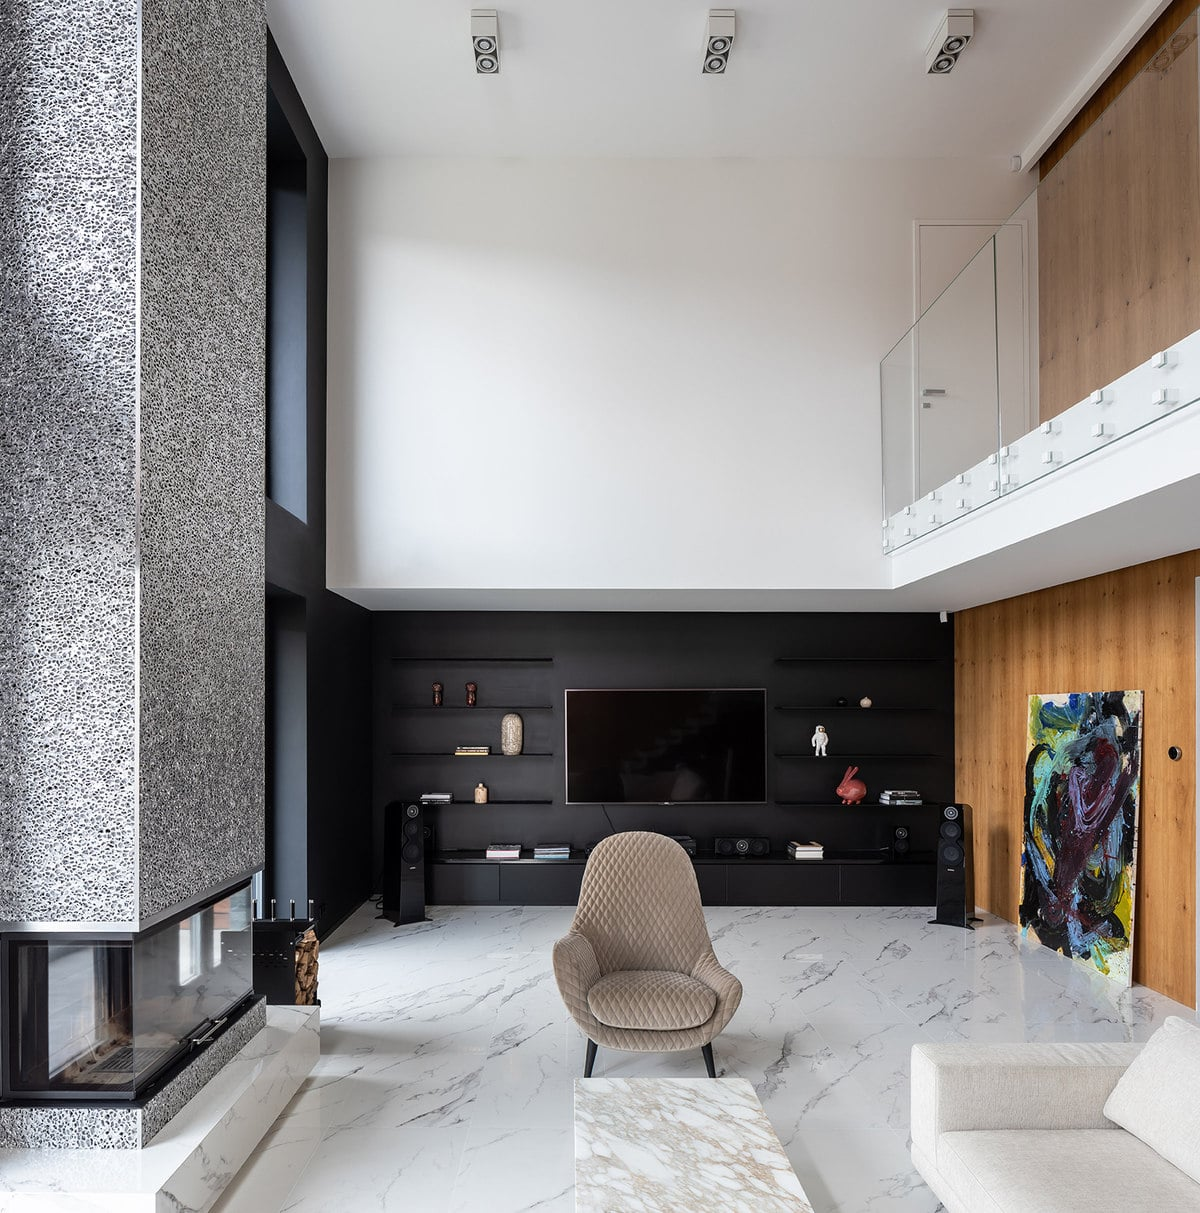 Behind the brown armchair is a large black wall with built in shelves that support the wall-mounted TV. There is also a large artwork leaning on the wall on the side.